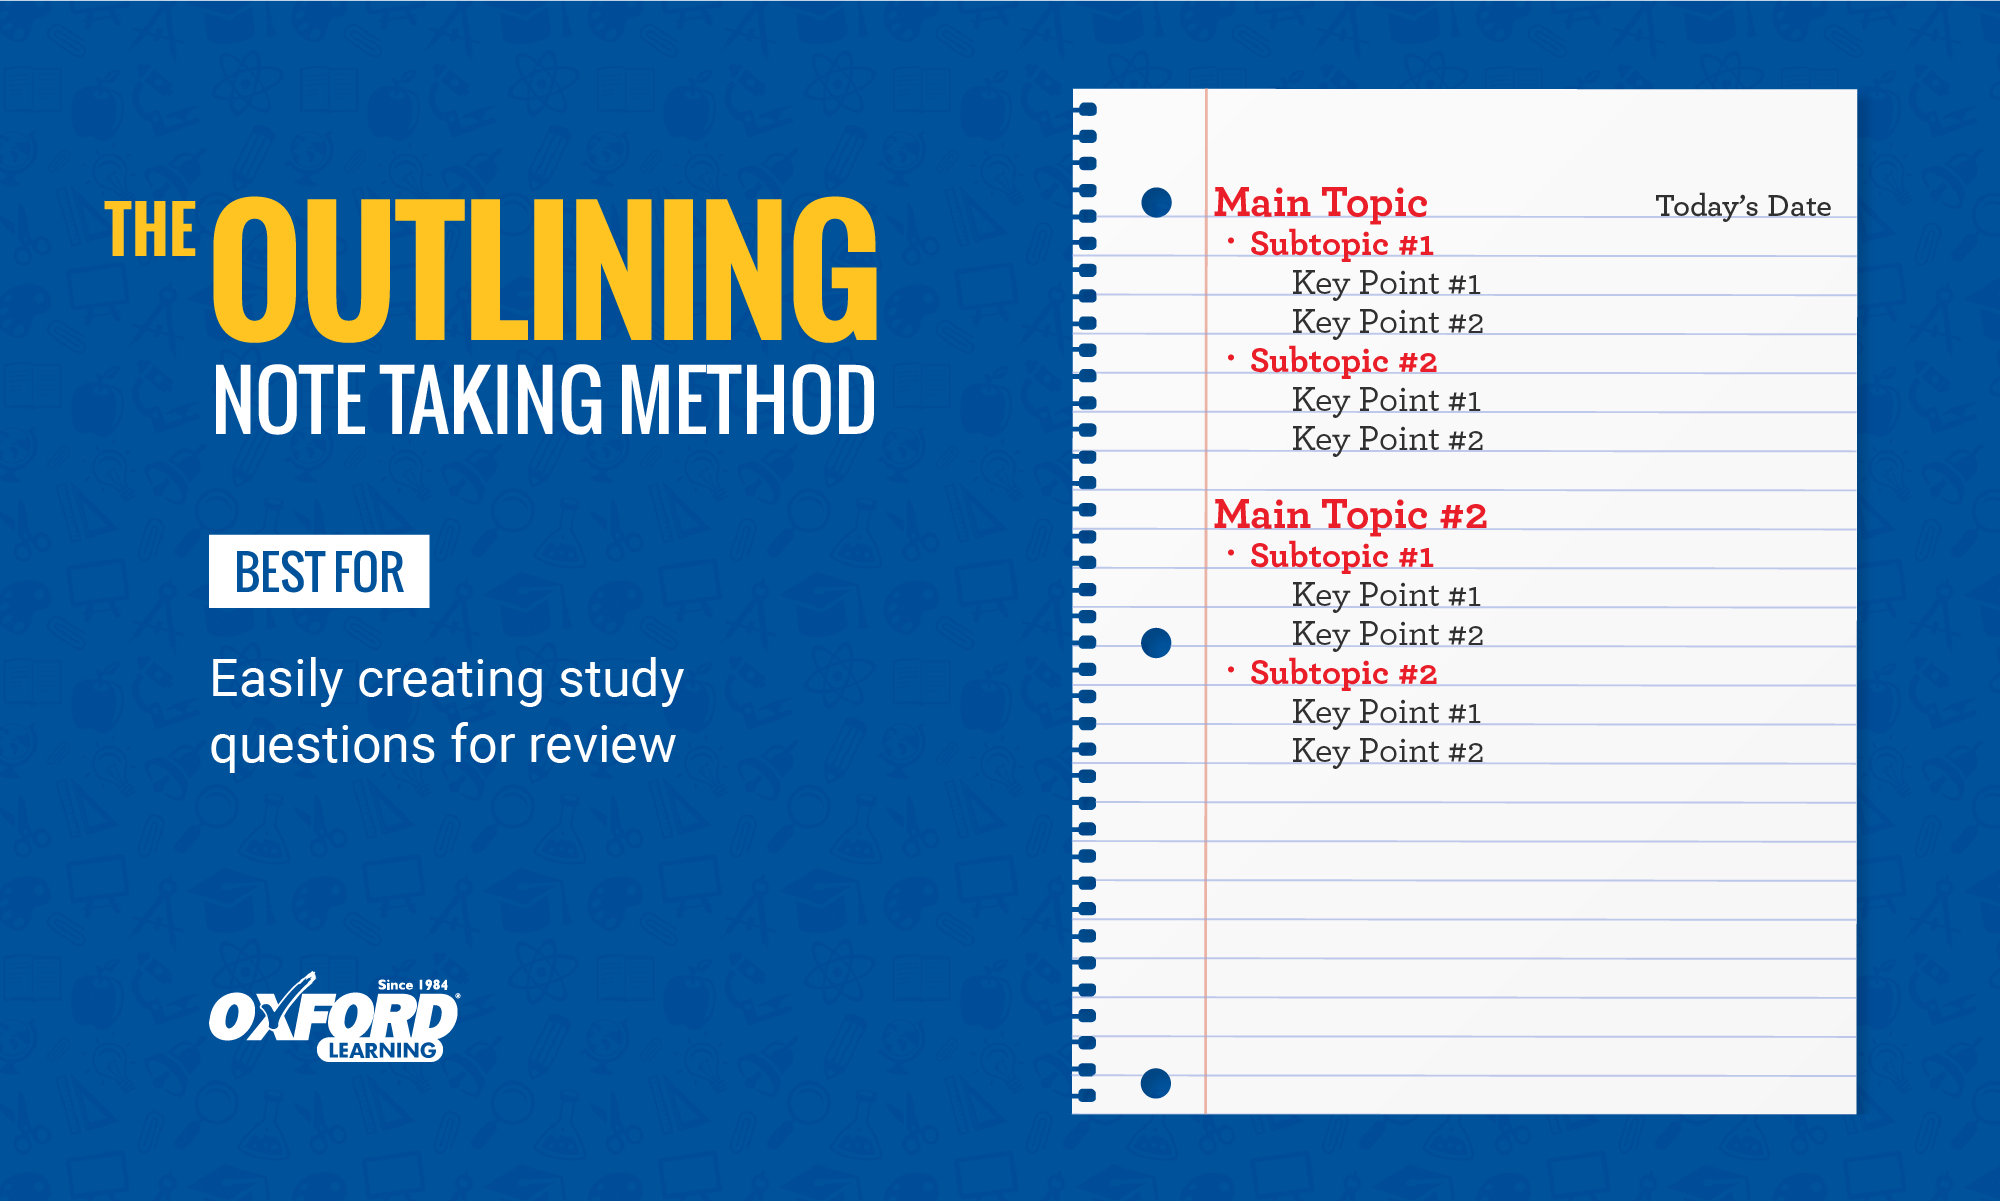 Example page set up for the Outlining note taking method